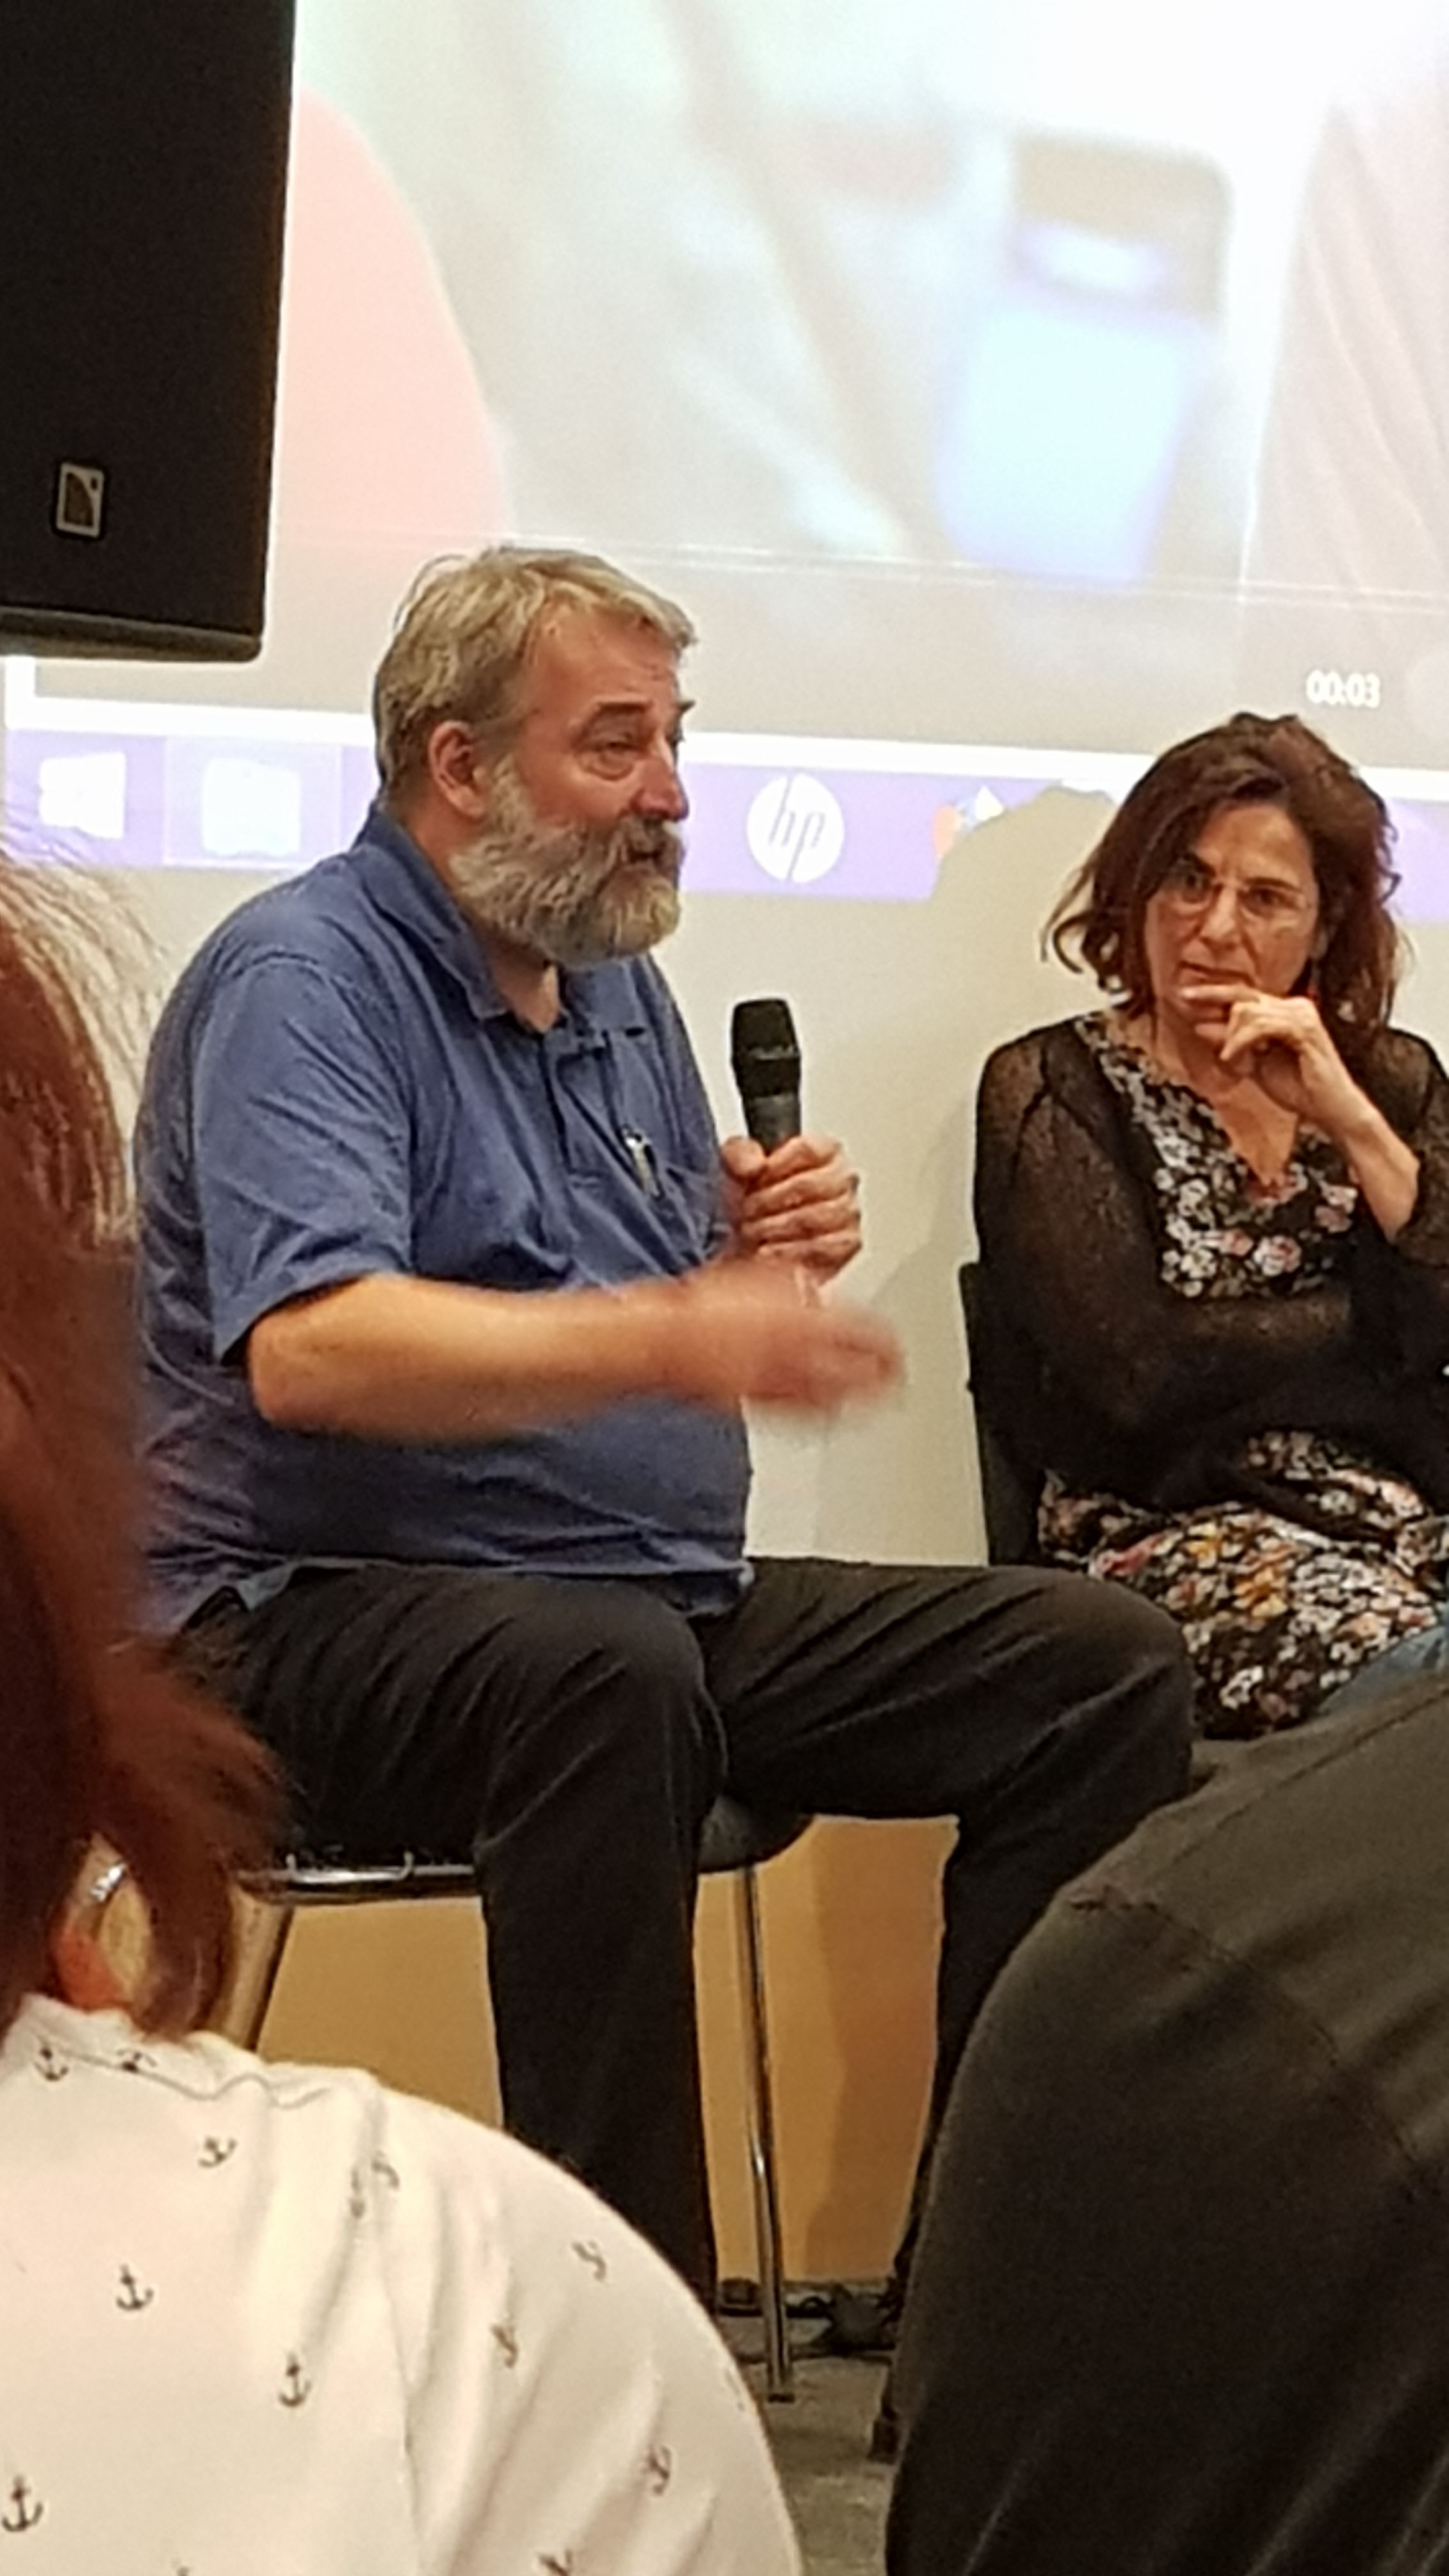 """Efi Latsoudi of Lesvos Solidarity and Otfried Nassauer of Information Center for Transatlantic Security at a Kirchentag panel. """"Open borders for refugees but close boarders for arms export."""""""